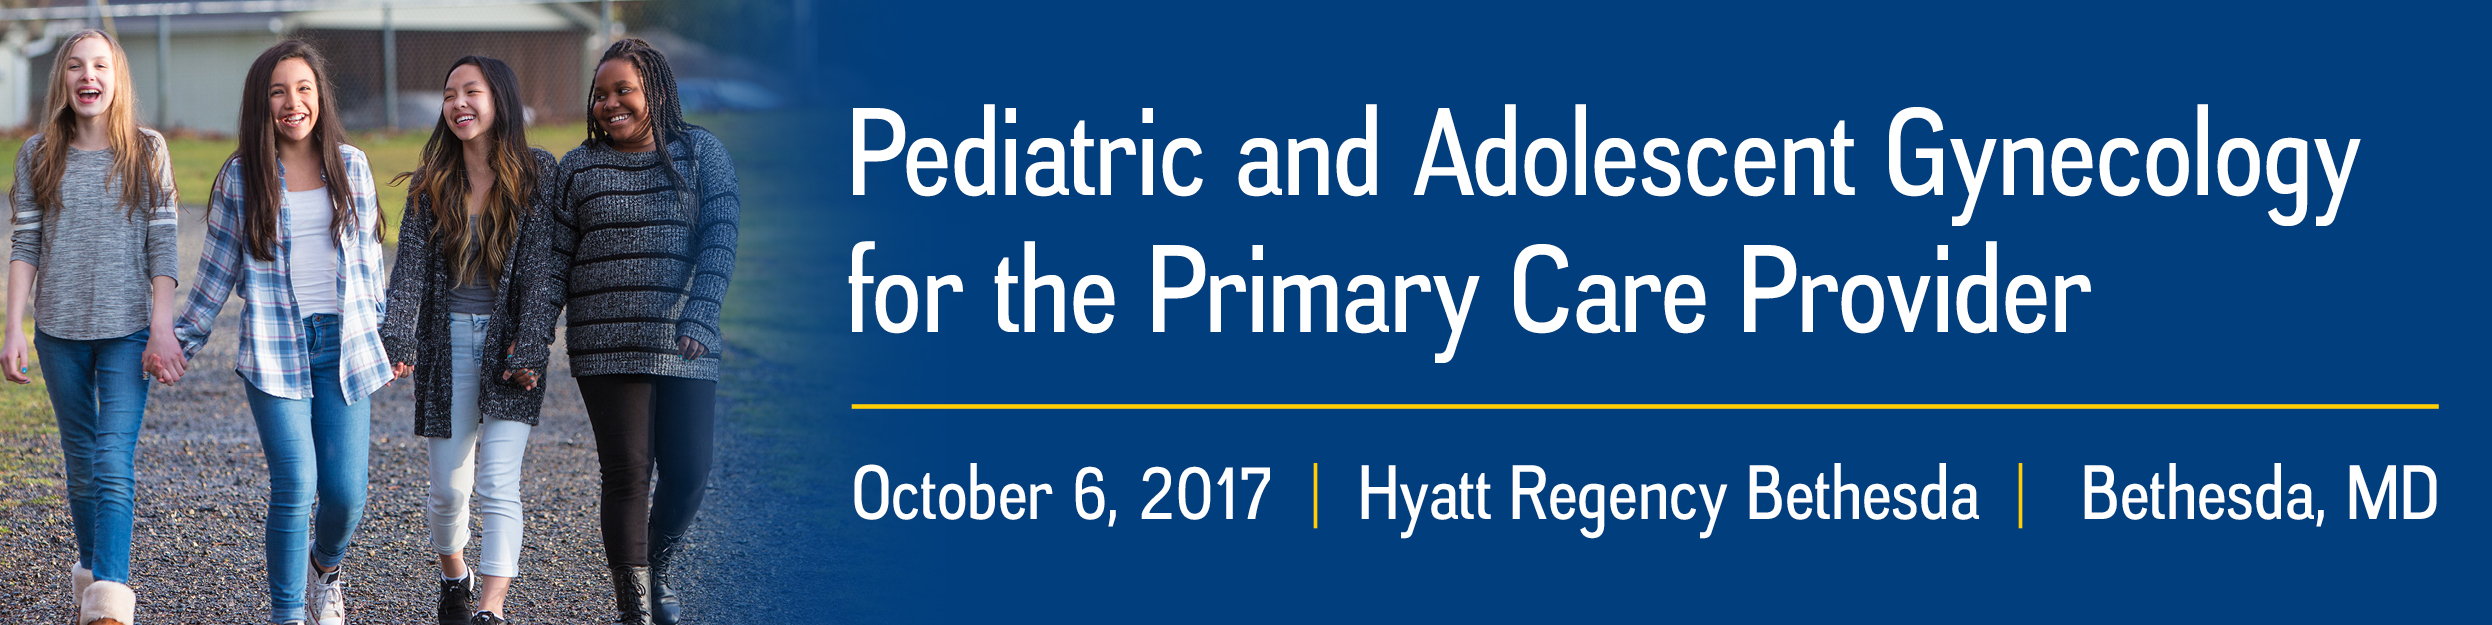 Pediatric and Adolescent Gynecology for the Primary Care Provider 2017 Banner